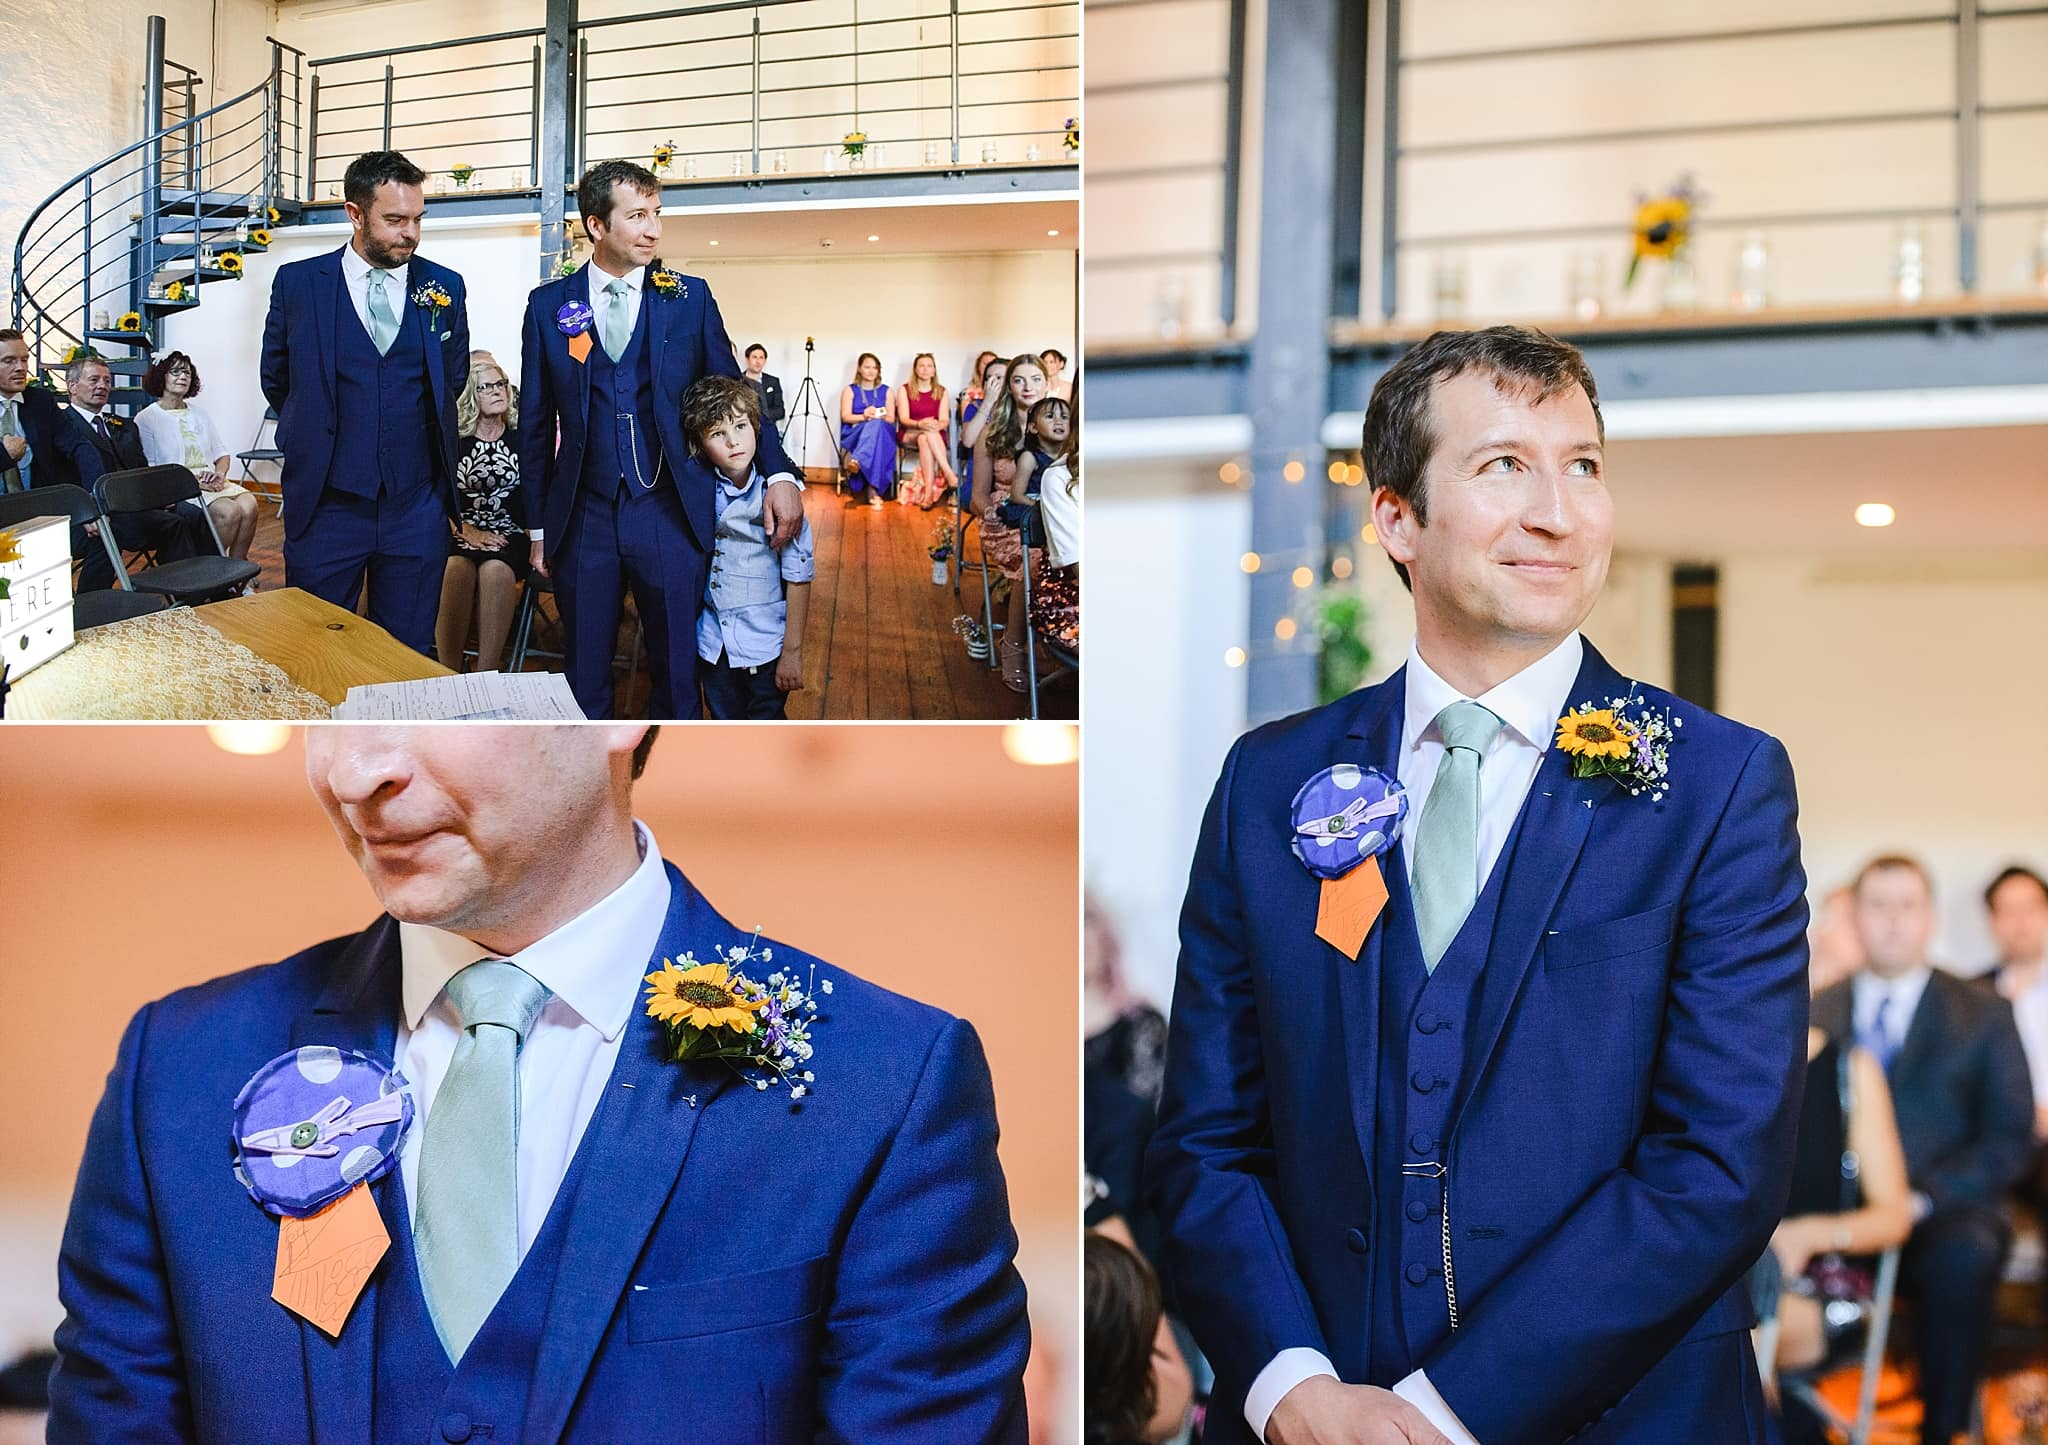 Groom waiting for his bride at Paintwork's wedding ceremony